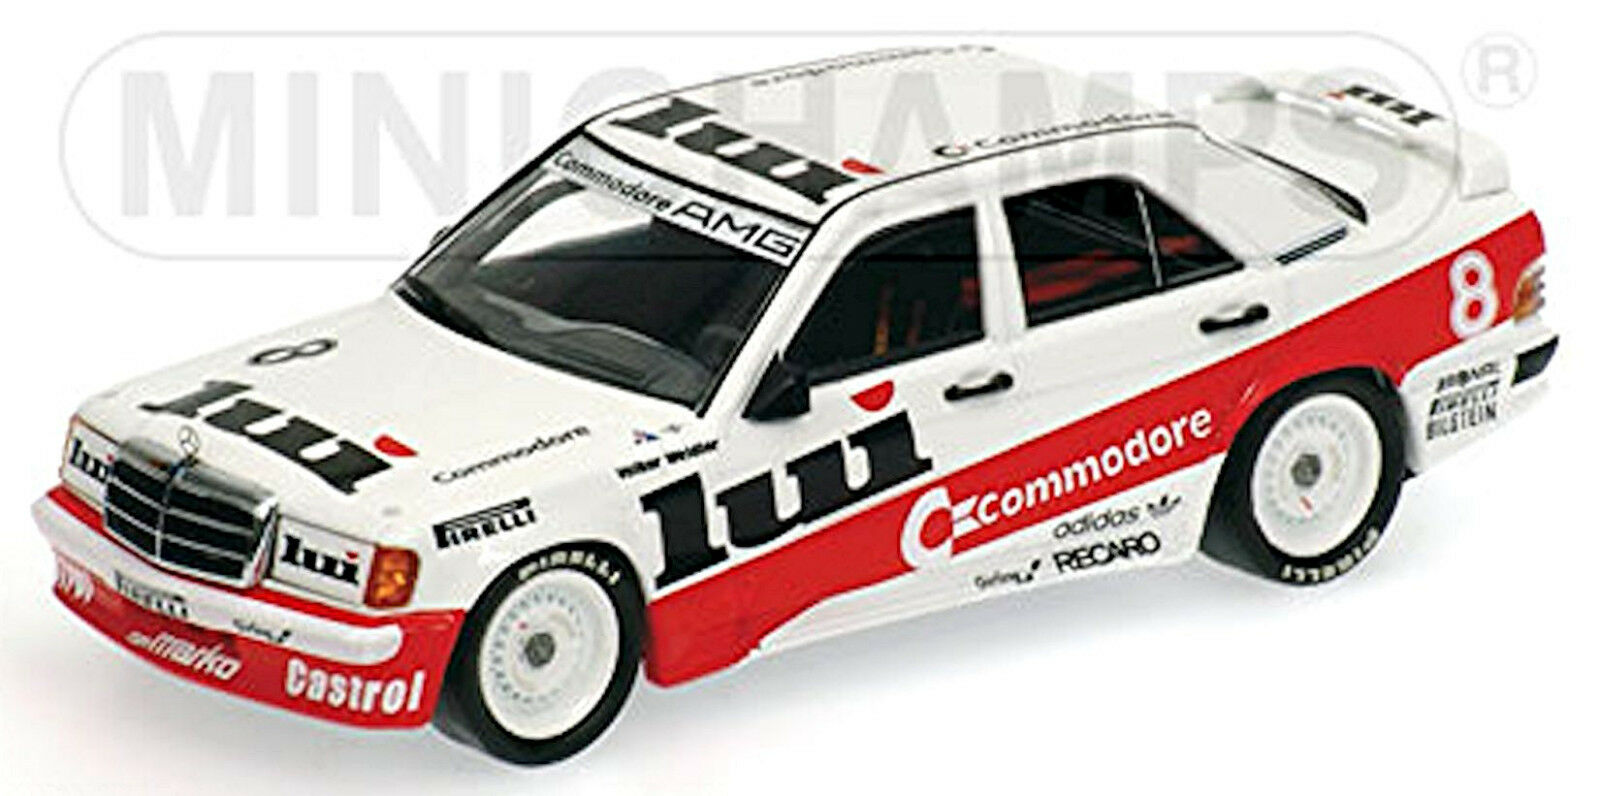 Mercedes 190 E 2,3-16 DTM 1986 V. Walker  8 Commodore lui 1 43 Minichamps